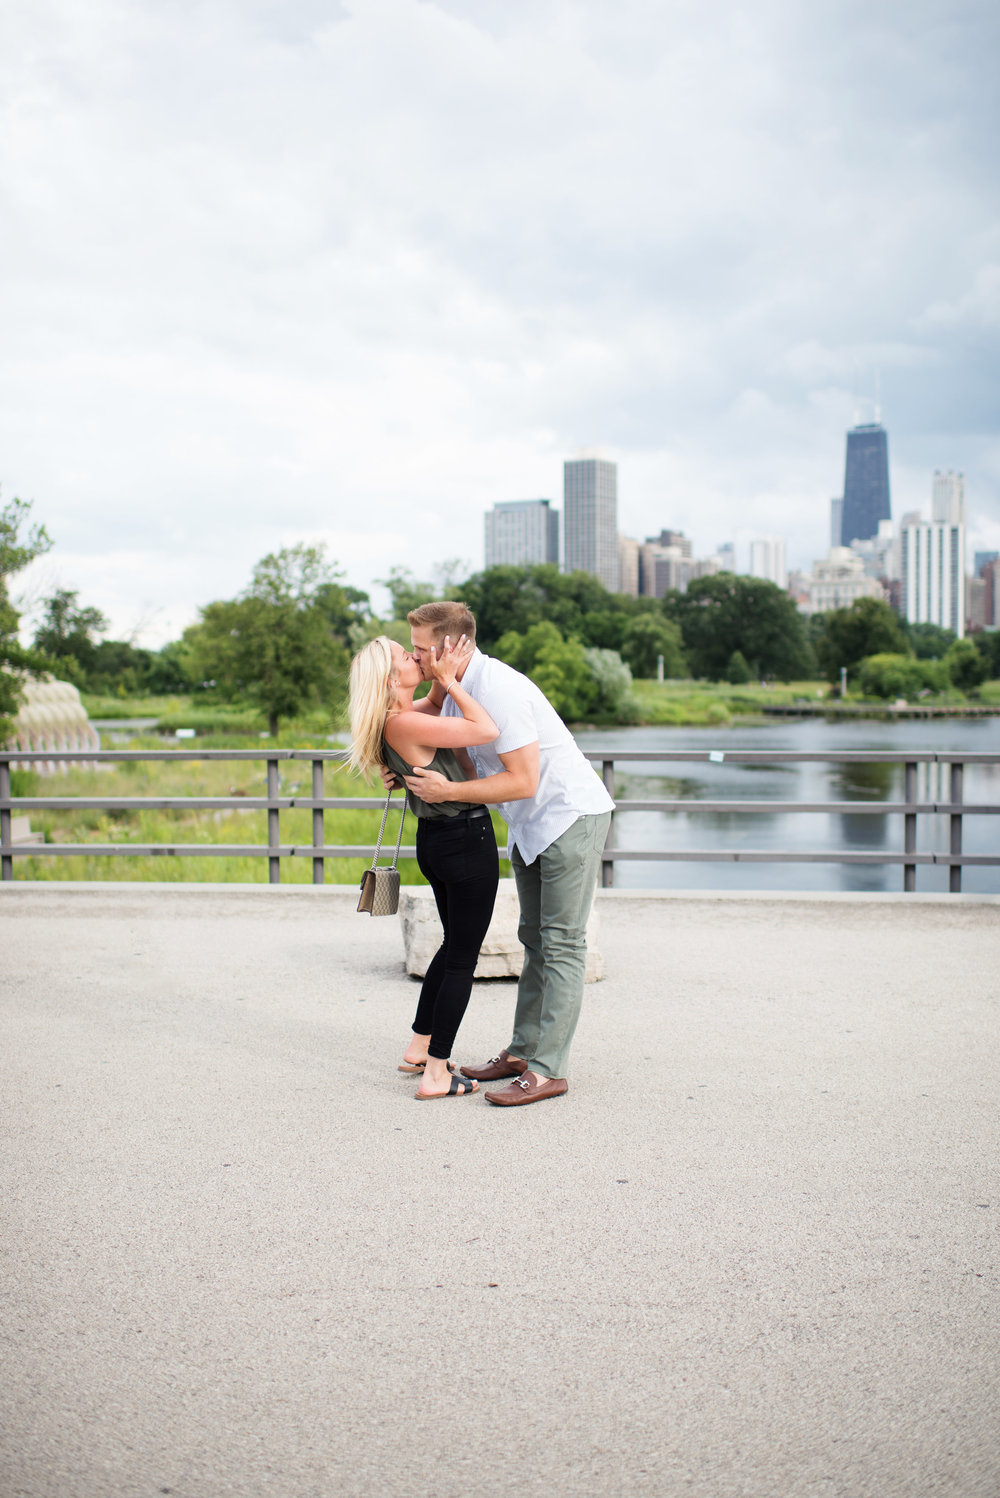 Surprise Chicago wedding proposal in Lincoln Park Zoo captured by Melina Morales Photography. See more wedding engagement and proposal ideas at CHItheeWED.com!